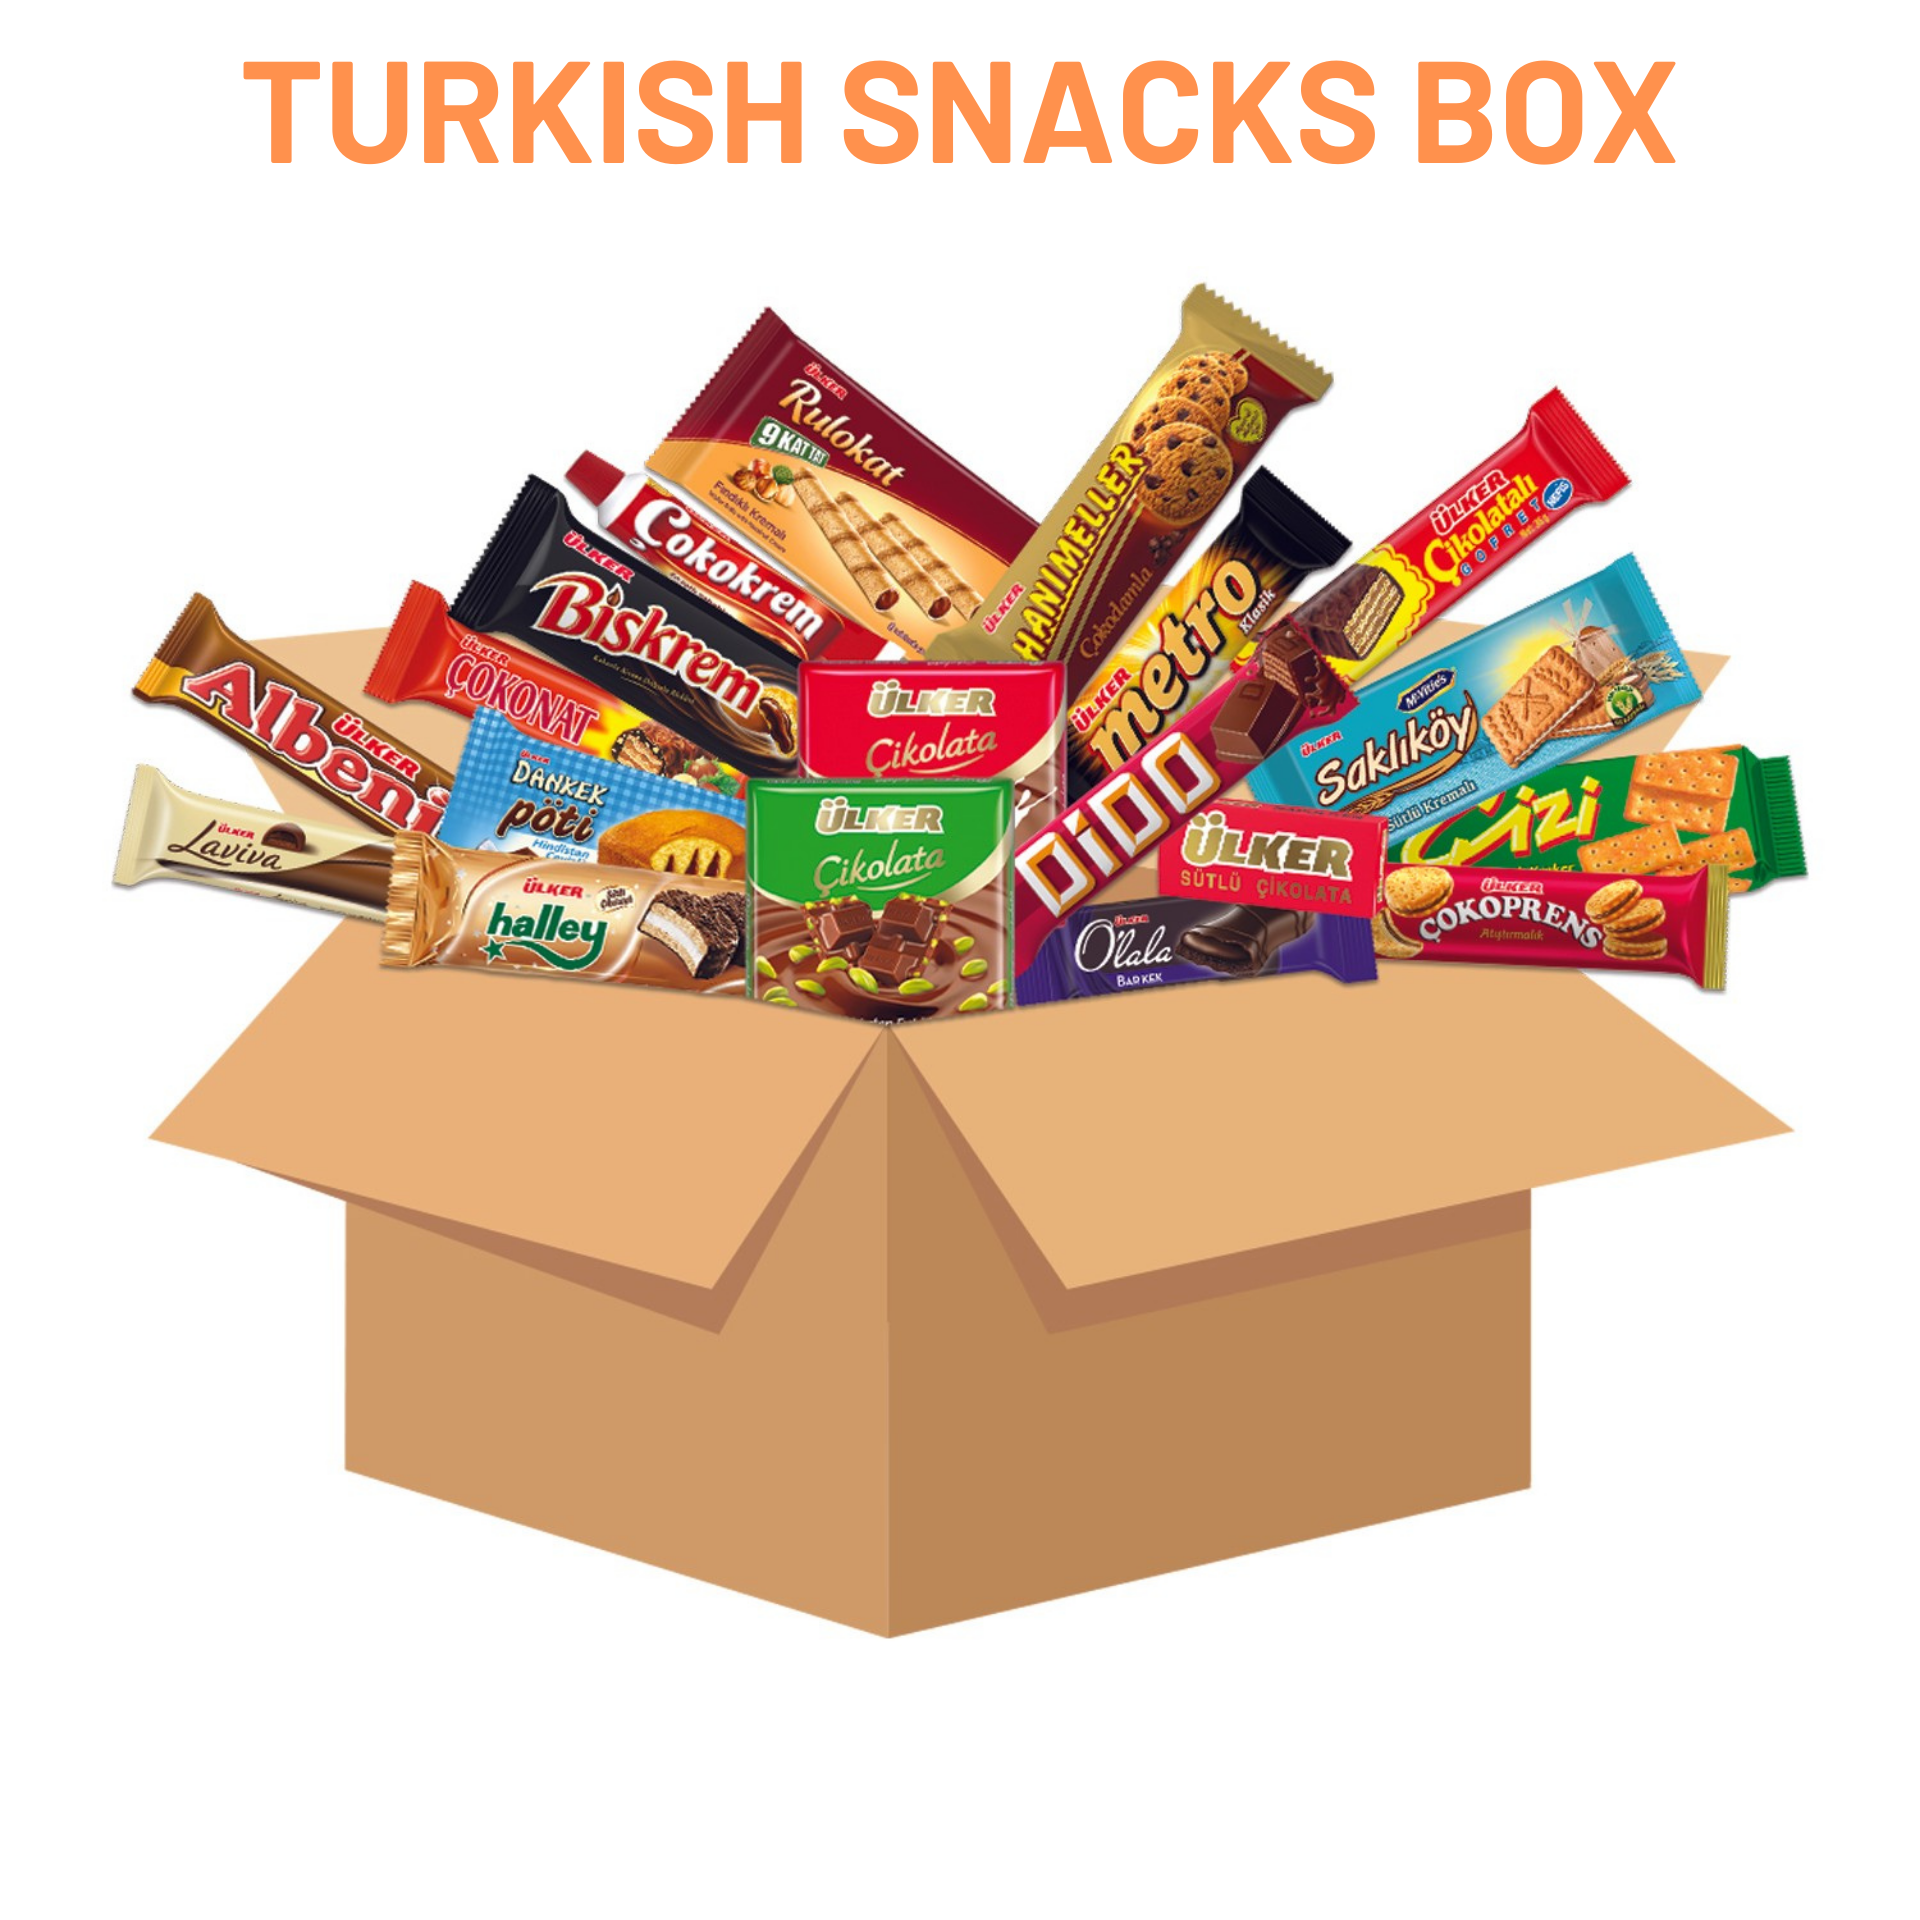 Turkish Snacks Box Famous And Popular Ones Tasty Multicultural Tastes Special Gift For Adults&Children Made In Turkey Halal Food